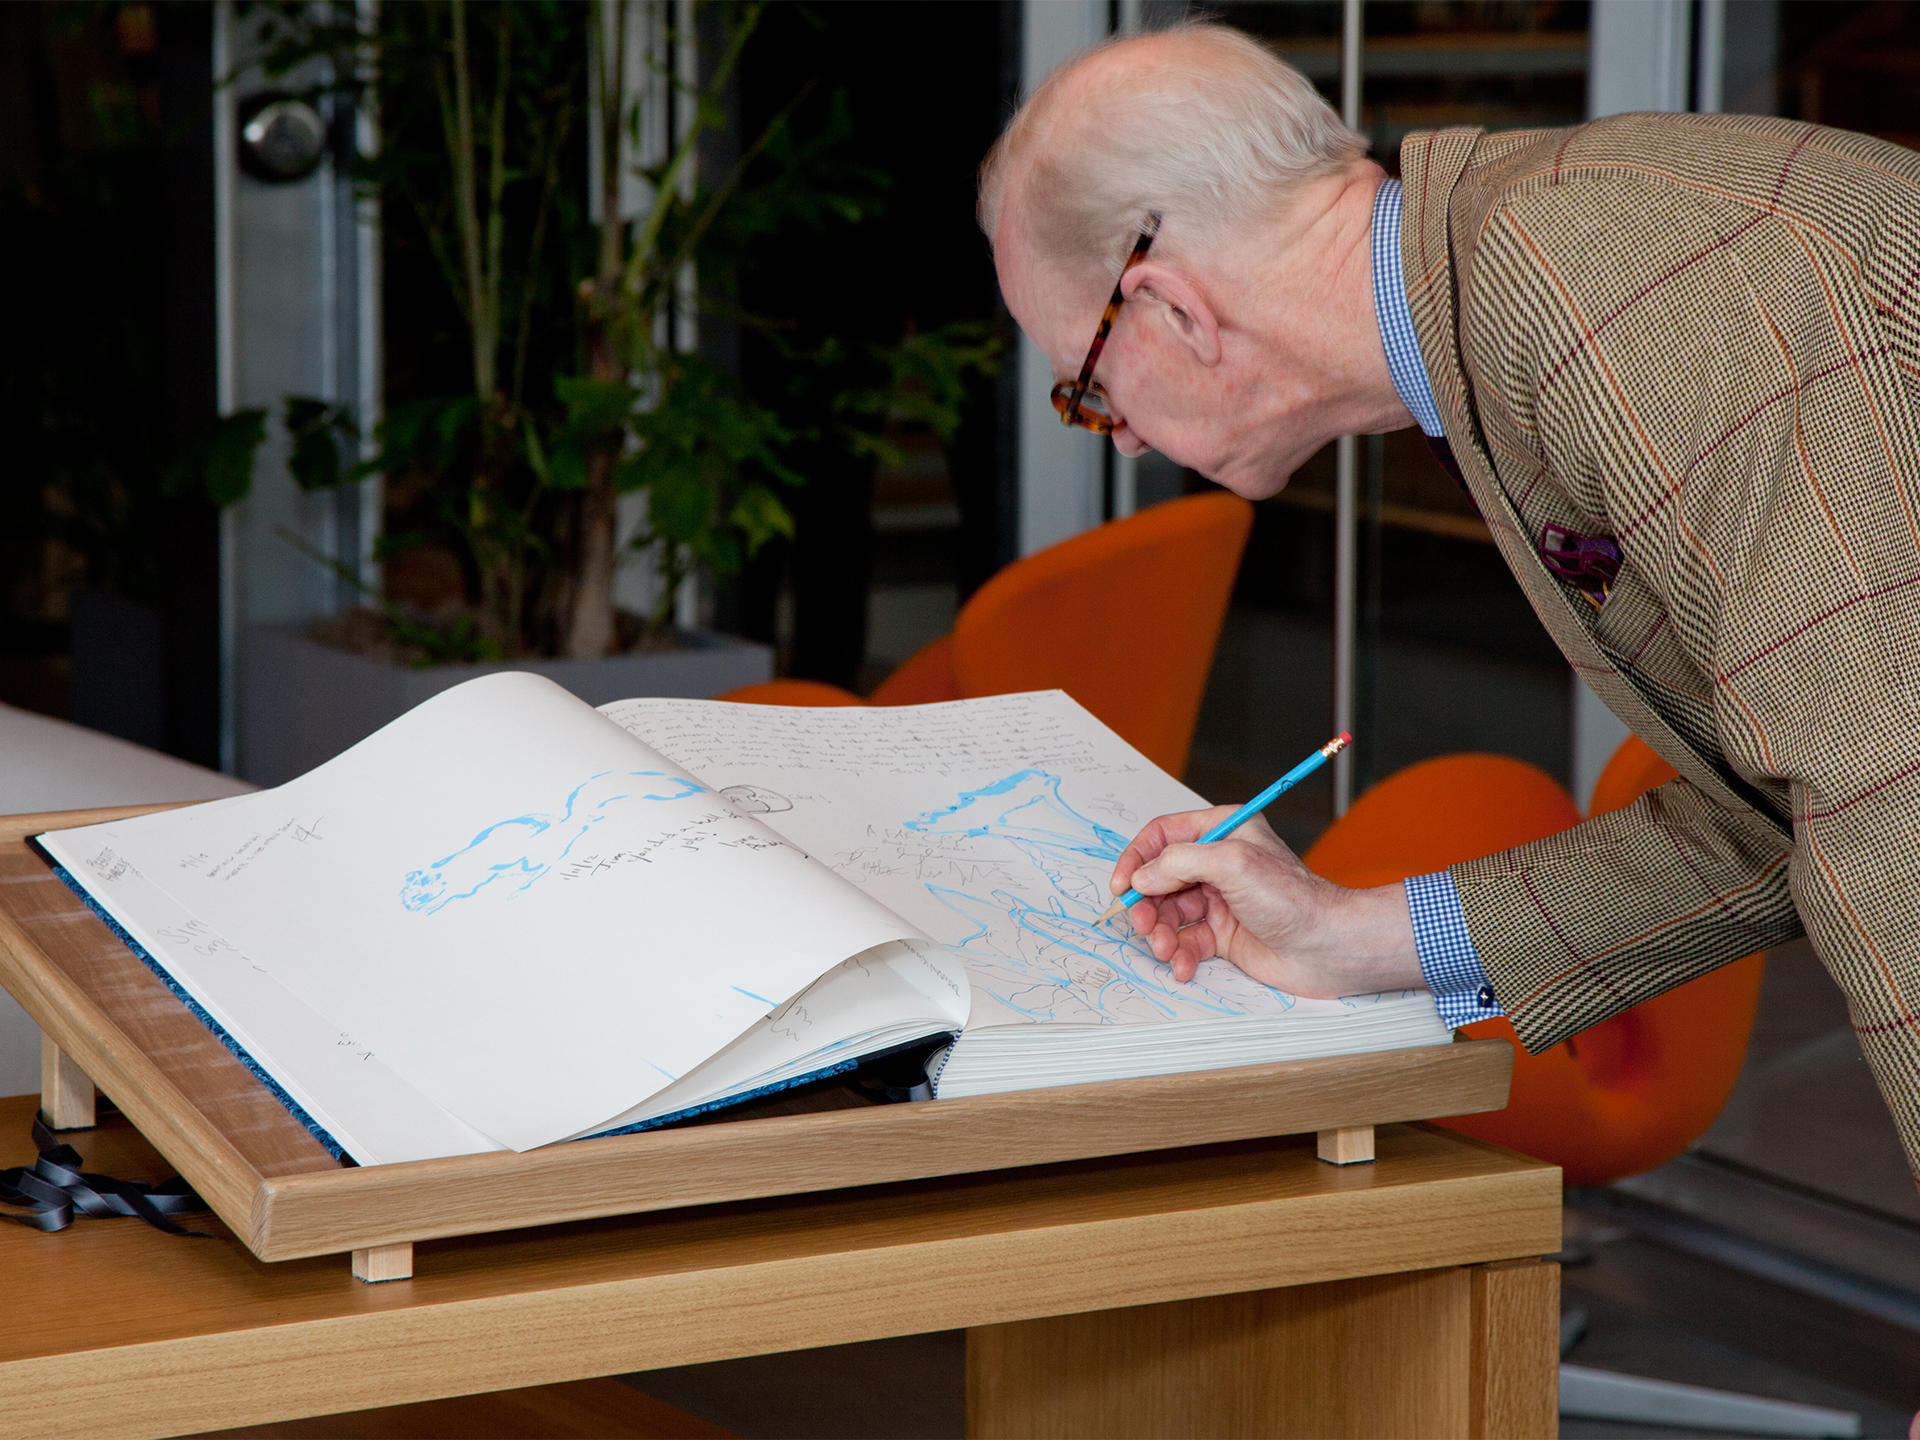 Guests signing in to the Libro Azzurro book designed by Arienti, 2012